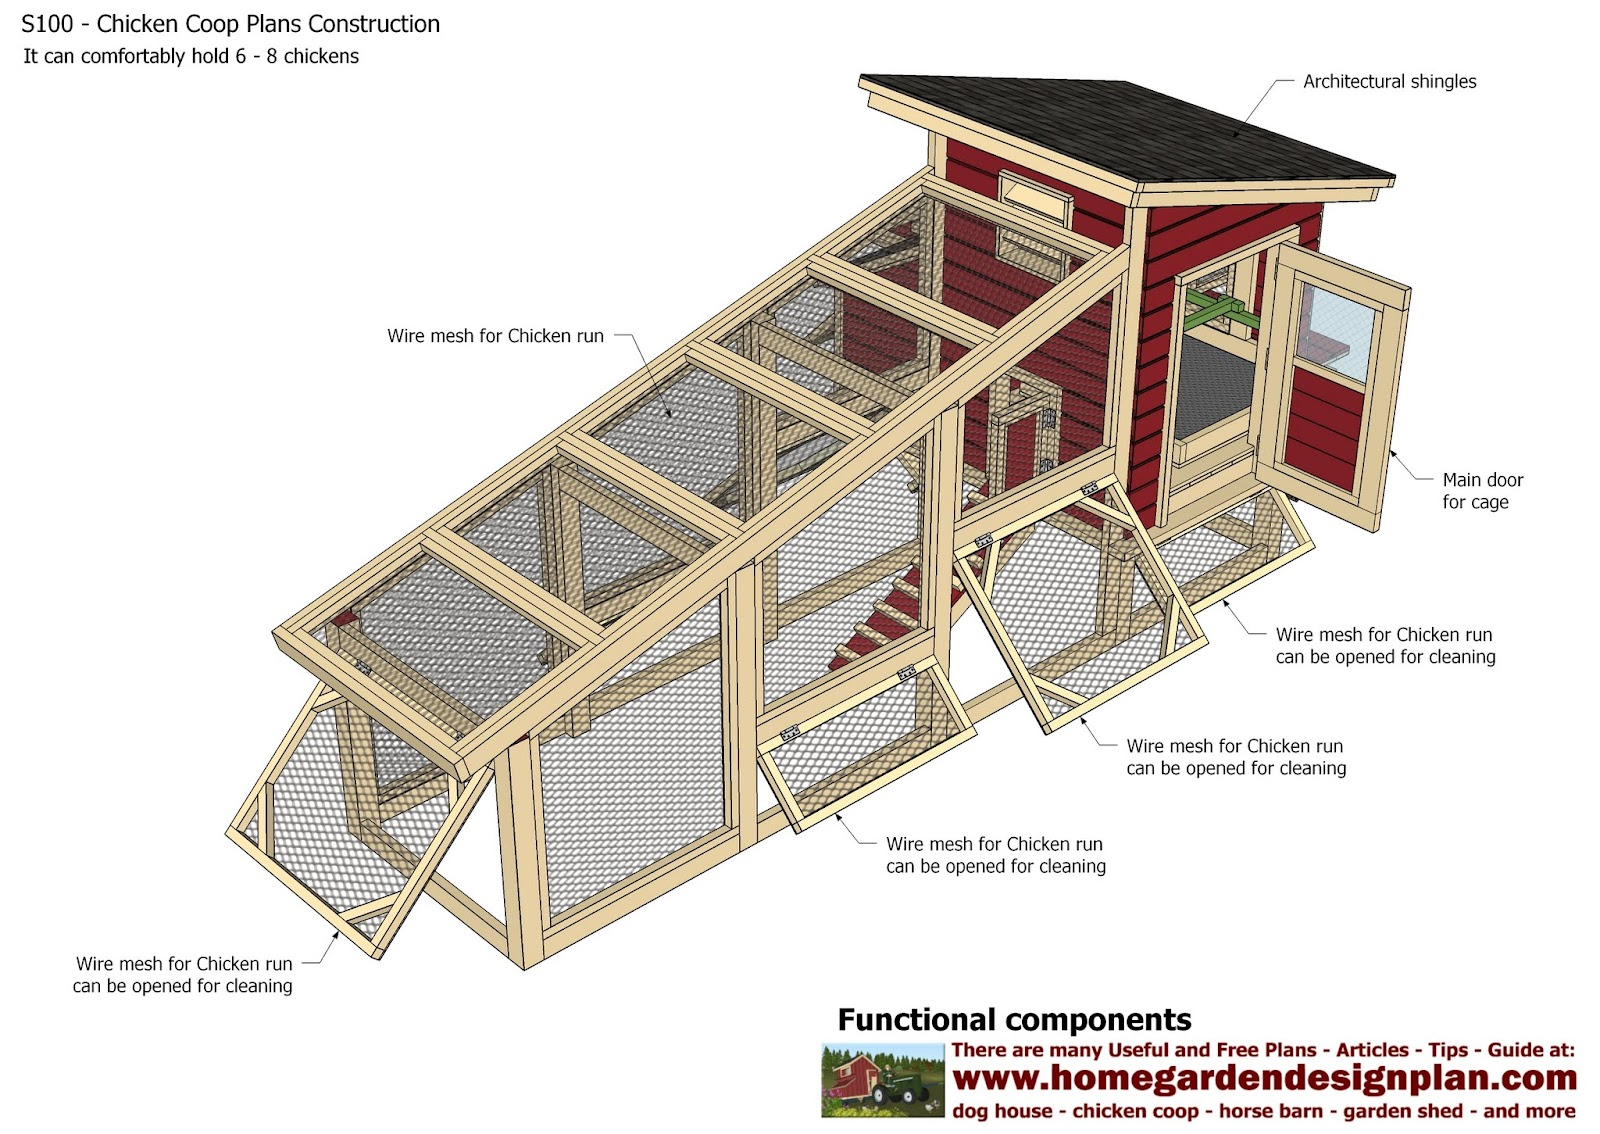 home garden plans s100 chicken coop plans construction